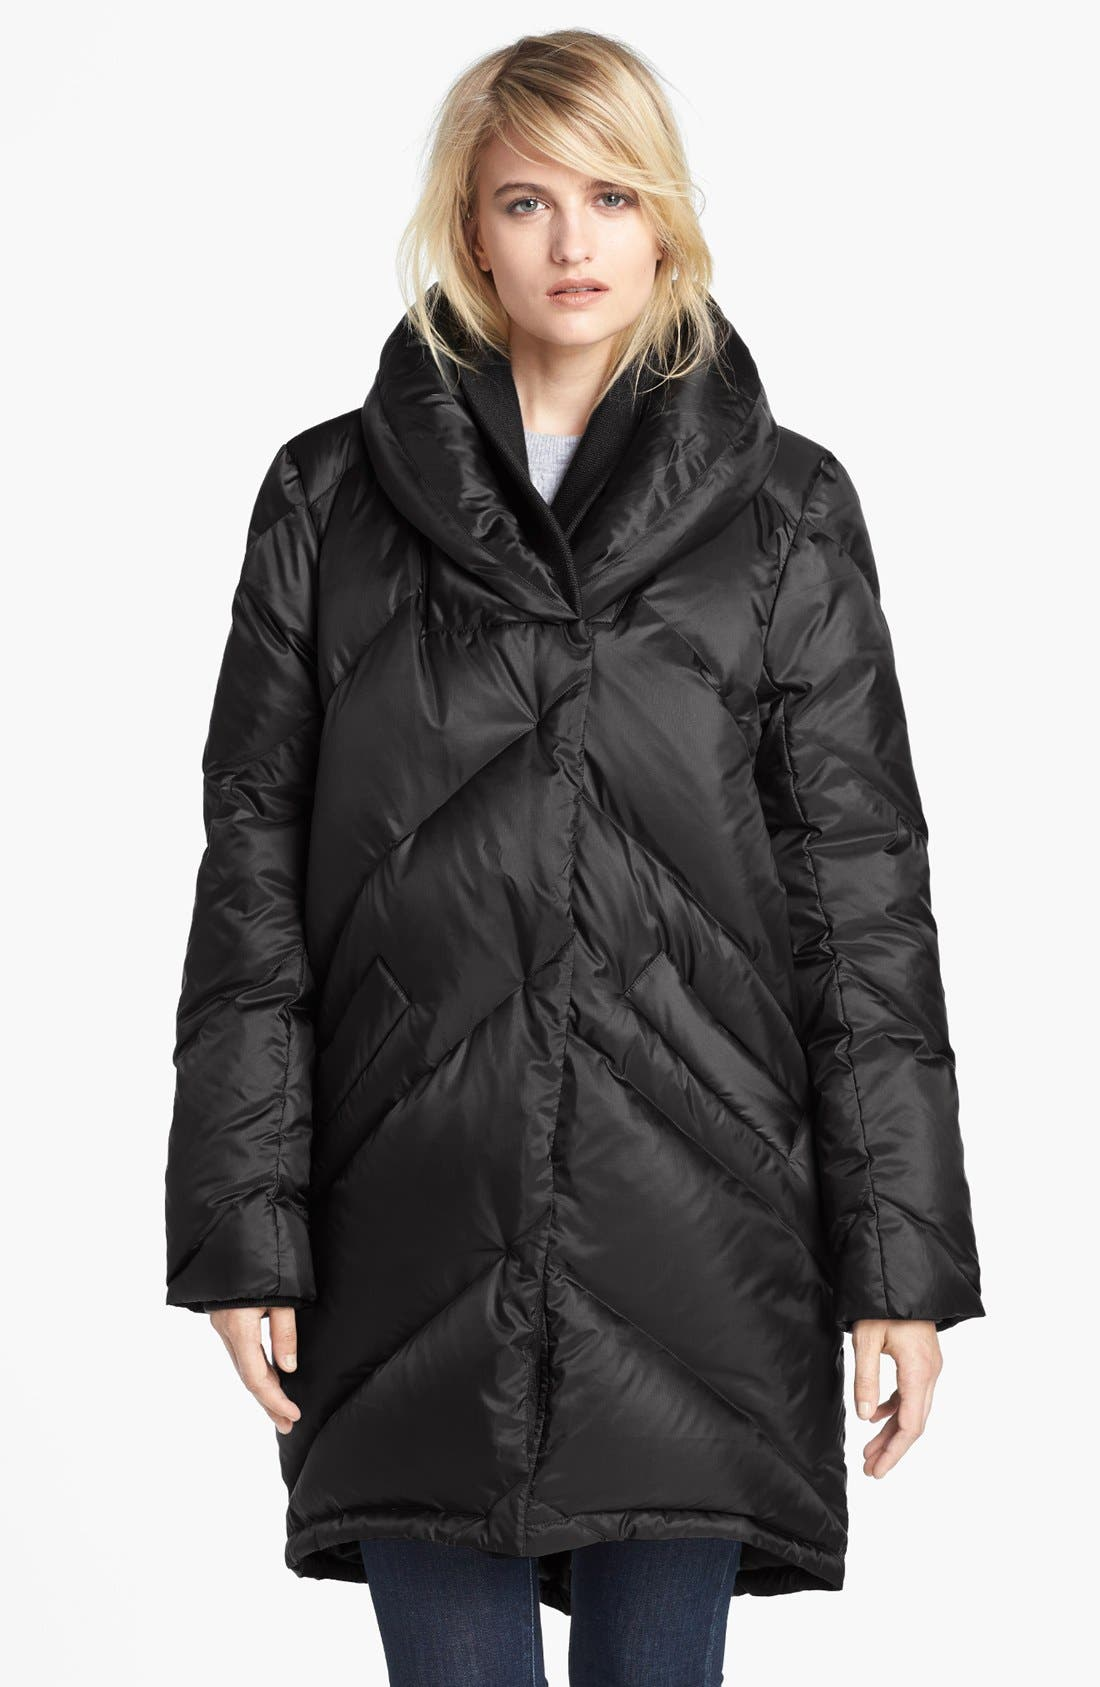 Alternate Image 1 Selected - Theory 'Lisina Periodical' Puffer Coat